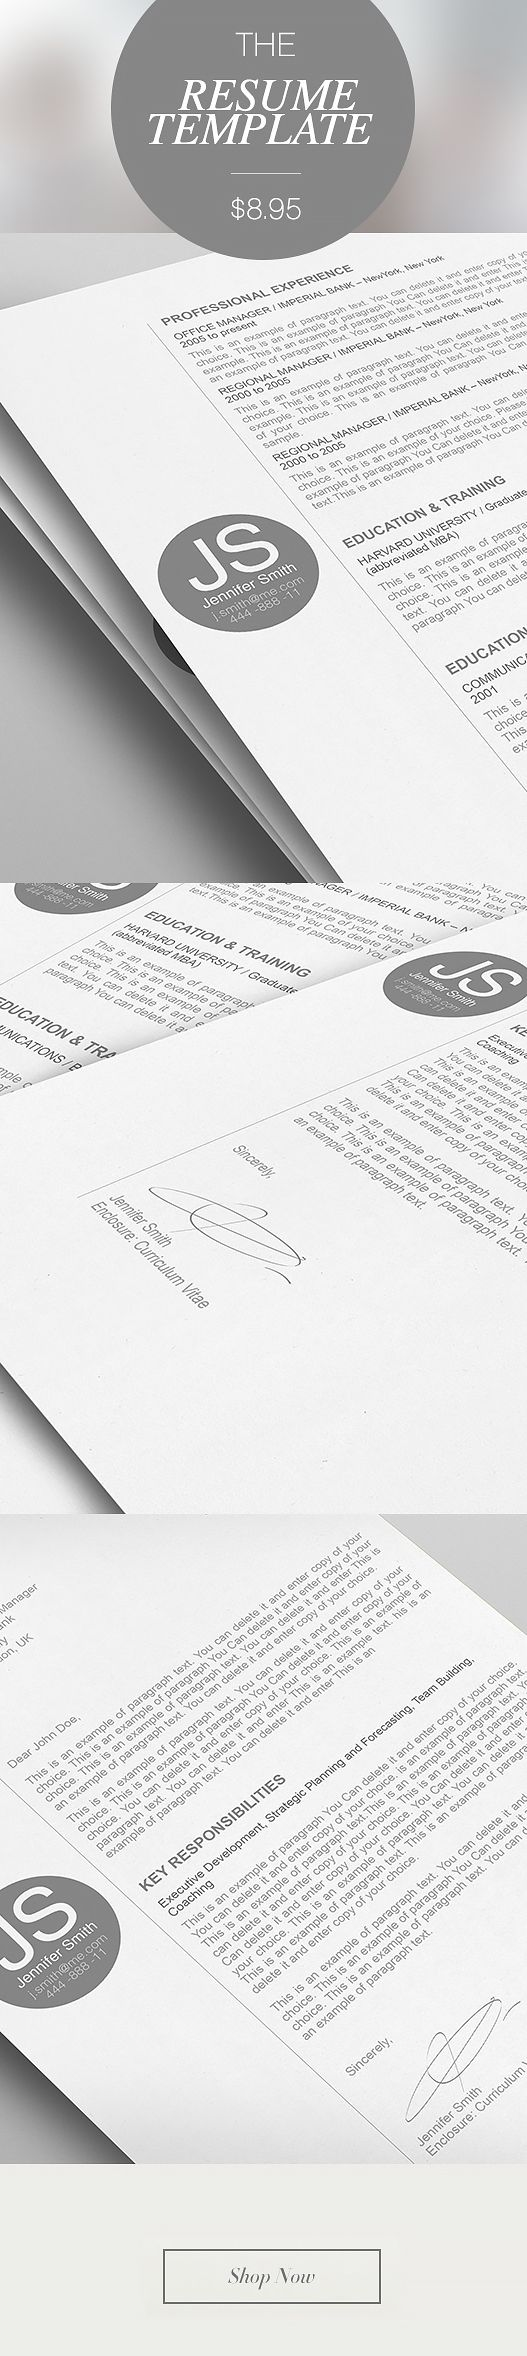 Best Ms Word Resume Templates Images On   Cv Design